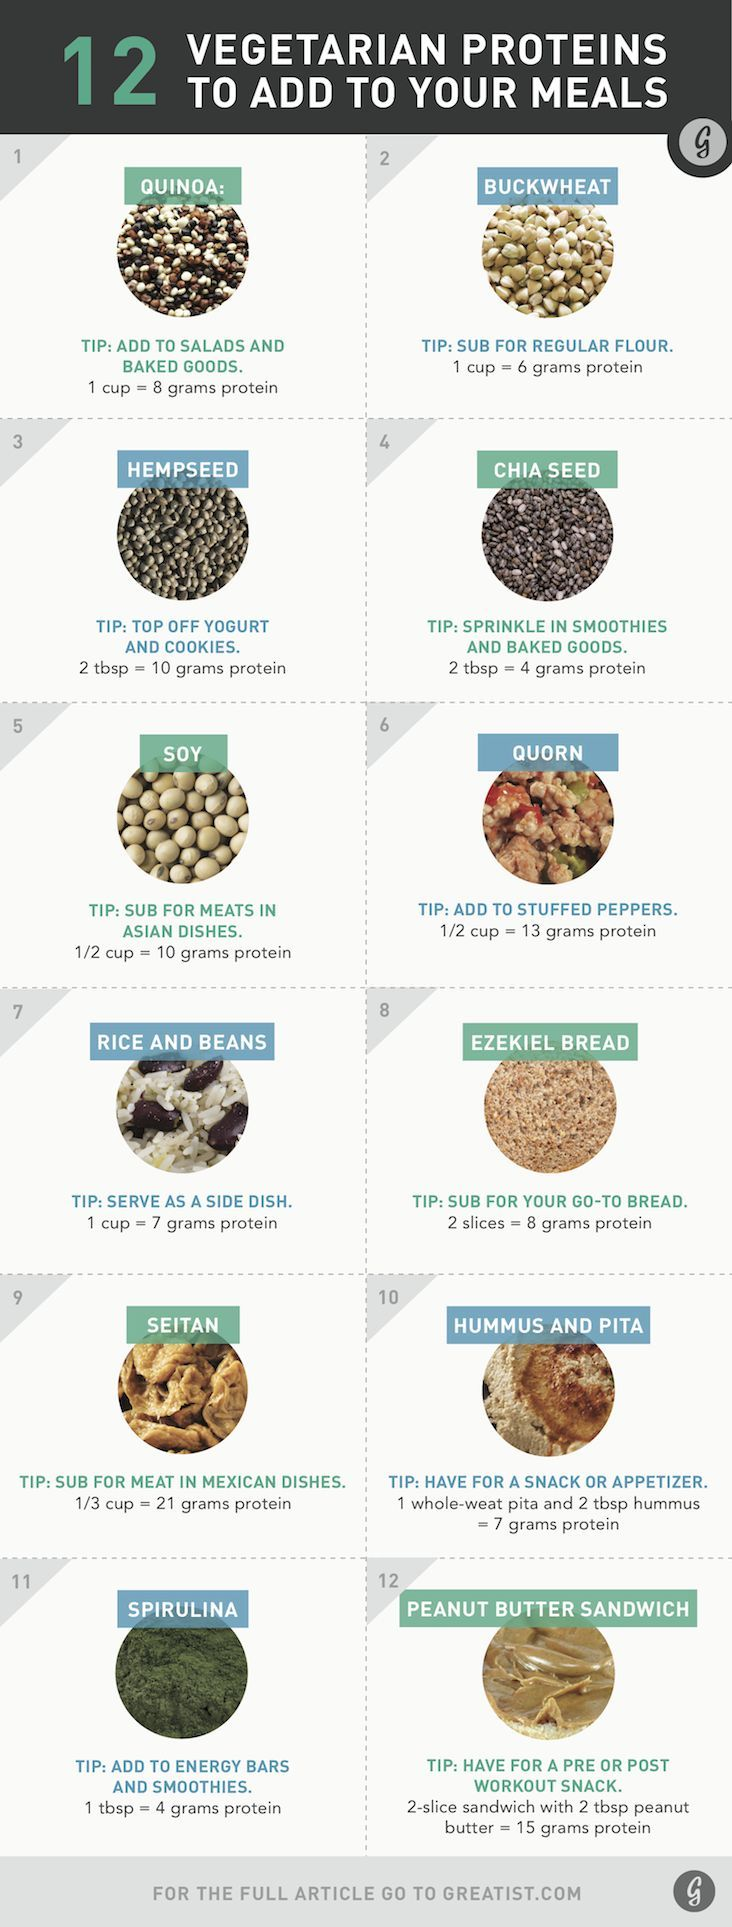 Protein from different sources http://www.bodybuilding.com/fun/12-complete-vegetarian-proteins.html  healthandfitnessnewswire.com